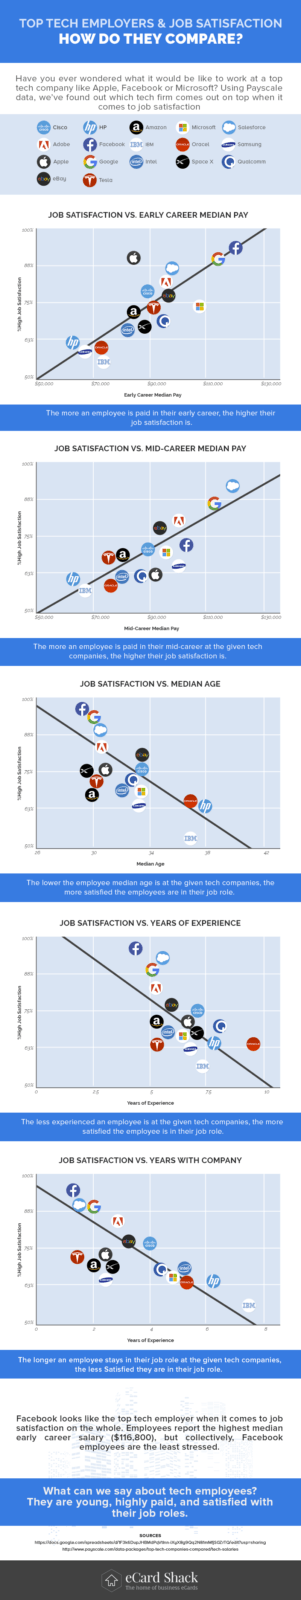 Top tech firms- are their employees happy?